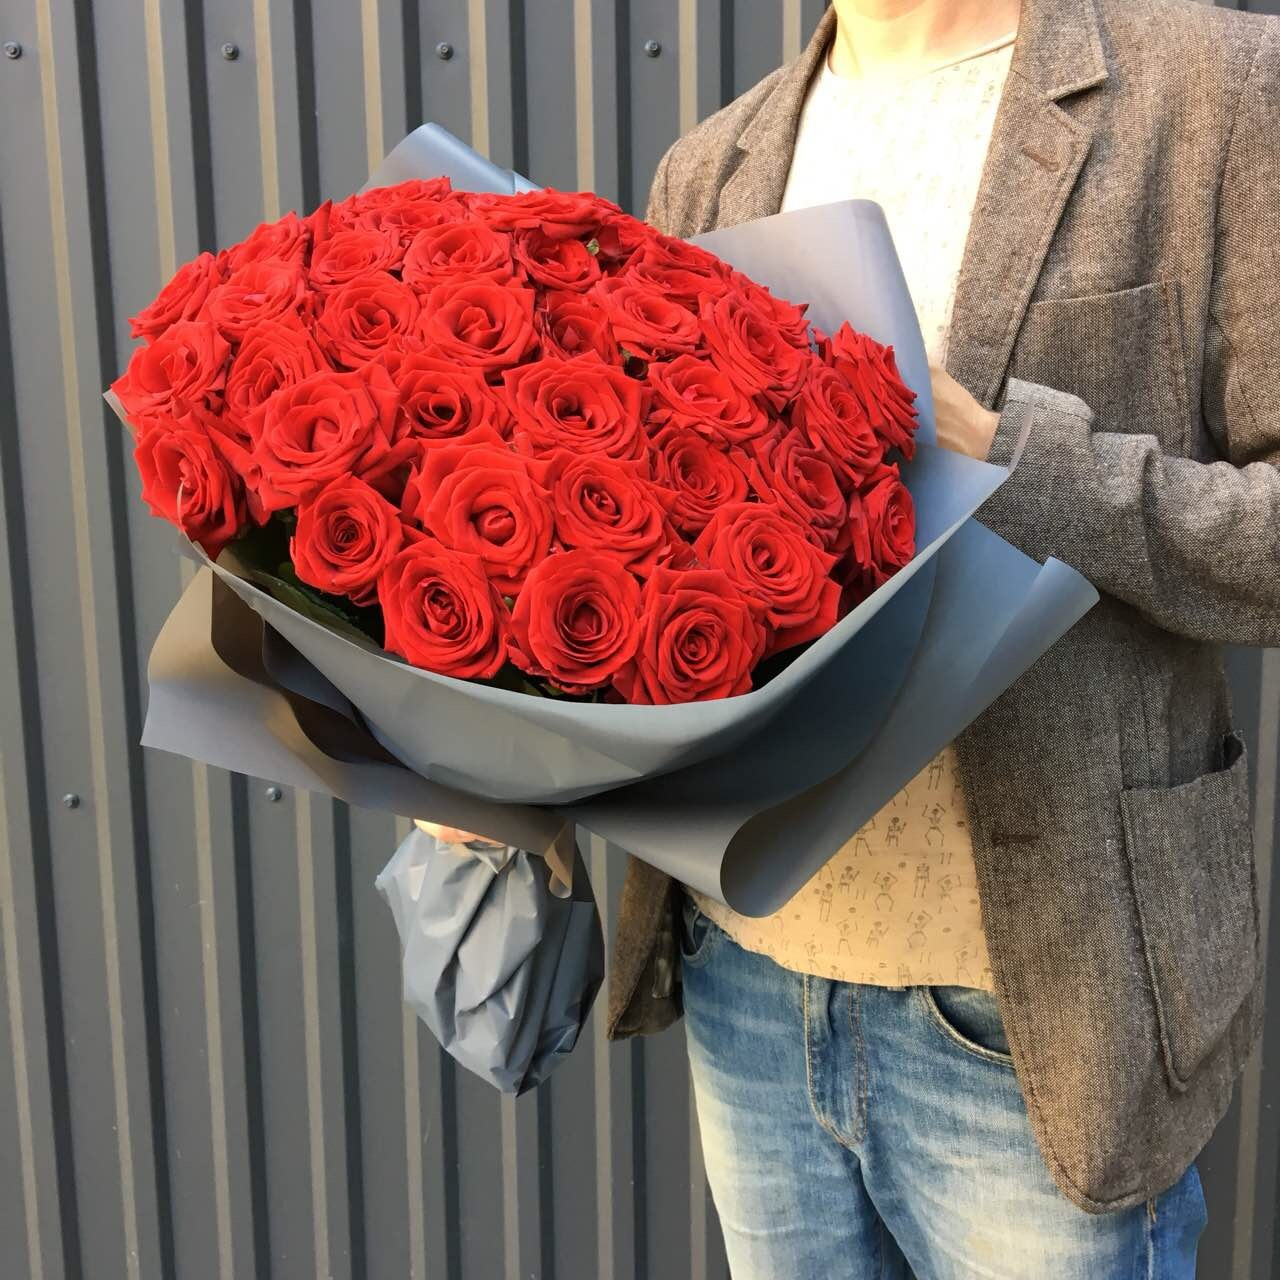 51 red rose delivery to Lviv - Kvitna - Rose Red